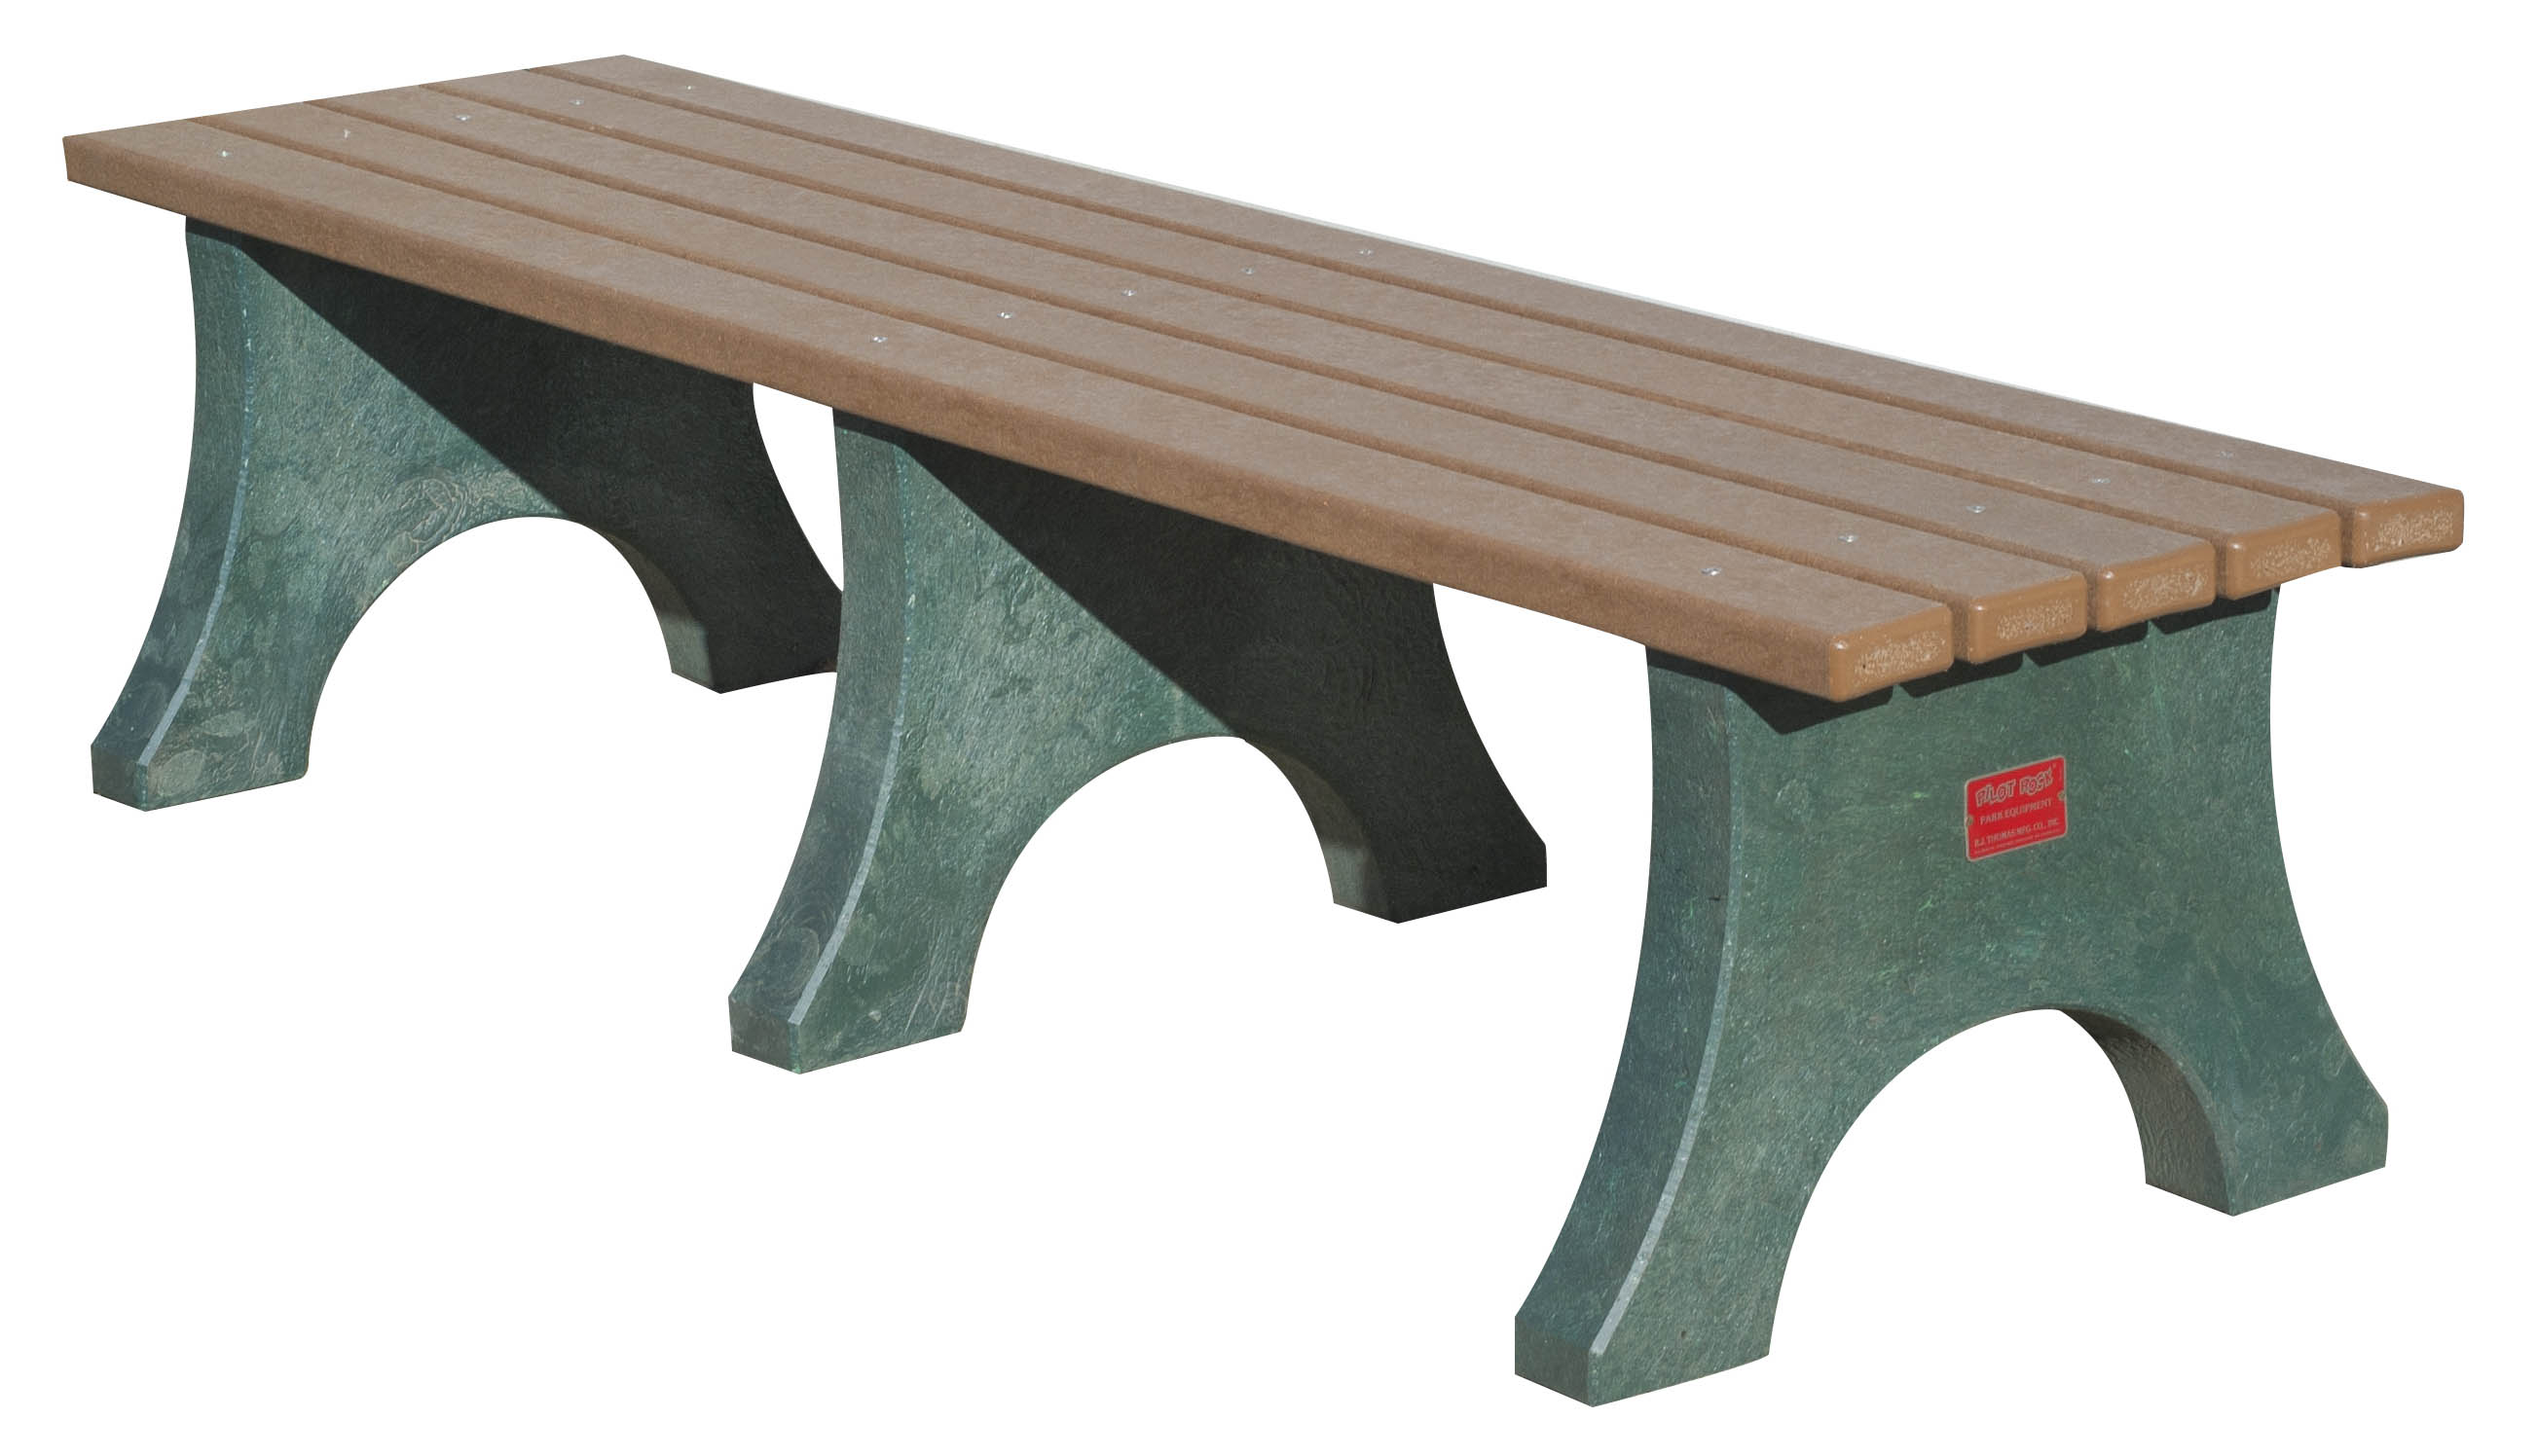 benches bench weather outdoor plastic resistant image recycled poly